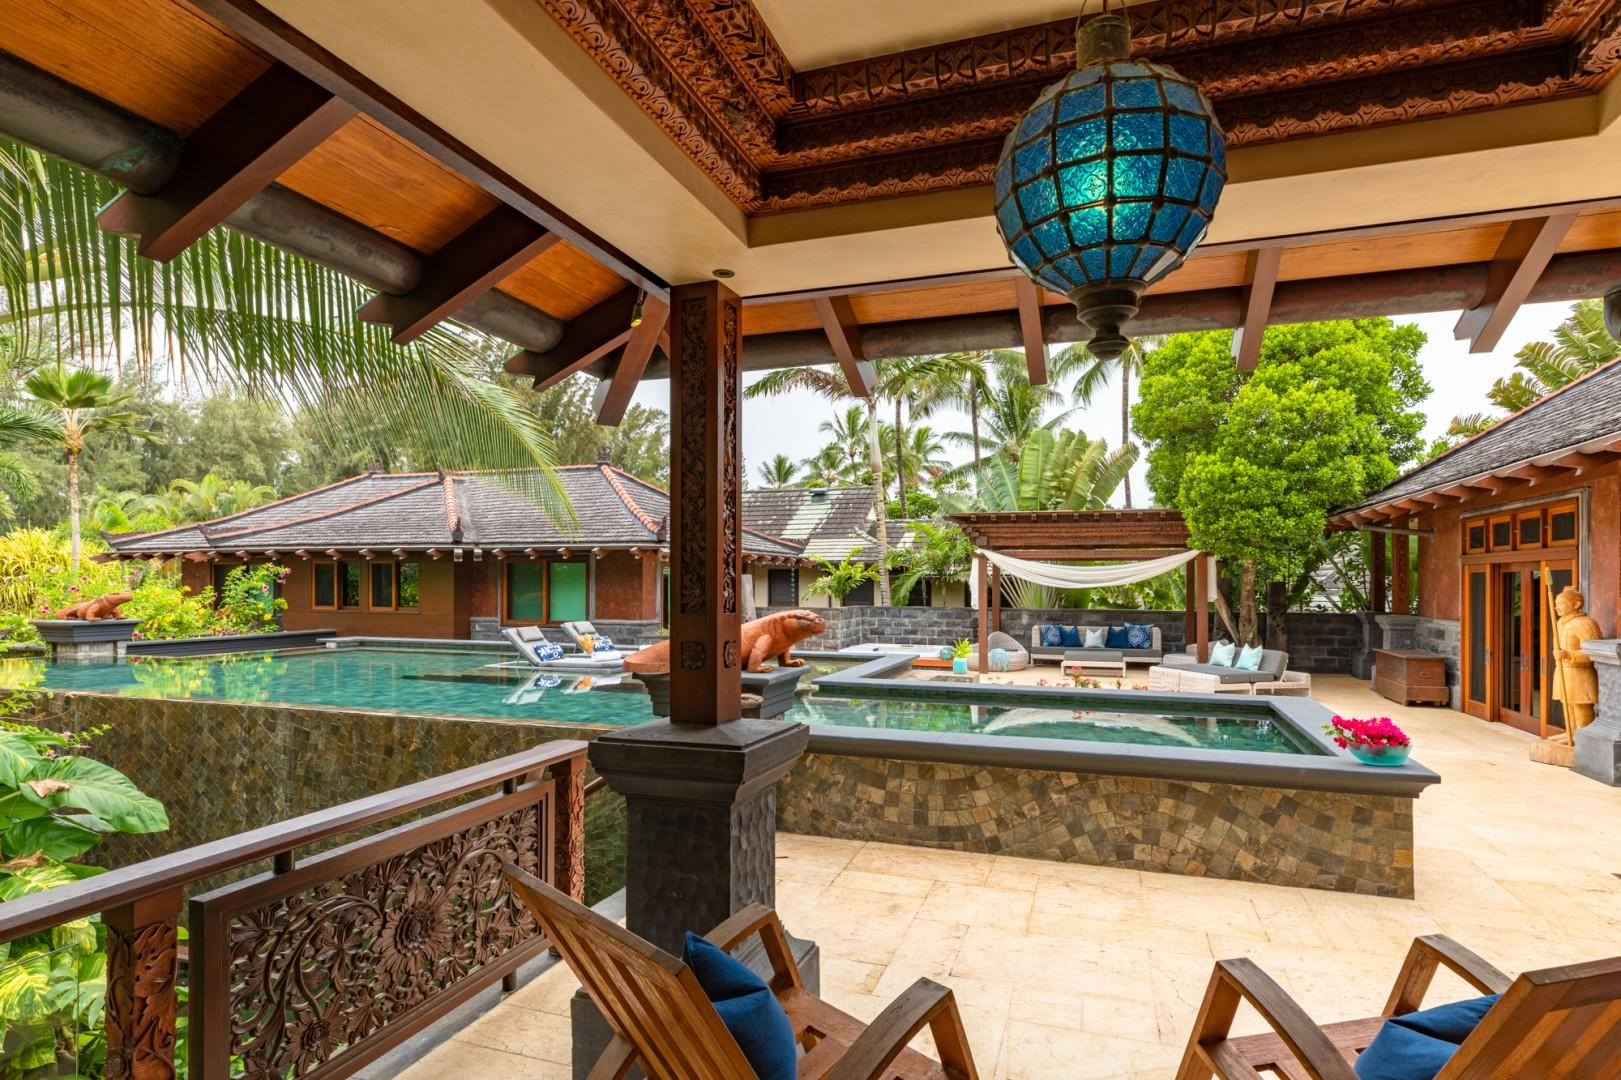 Pool Courtyard view from Guest Bedroom